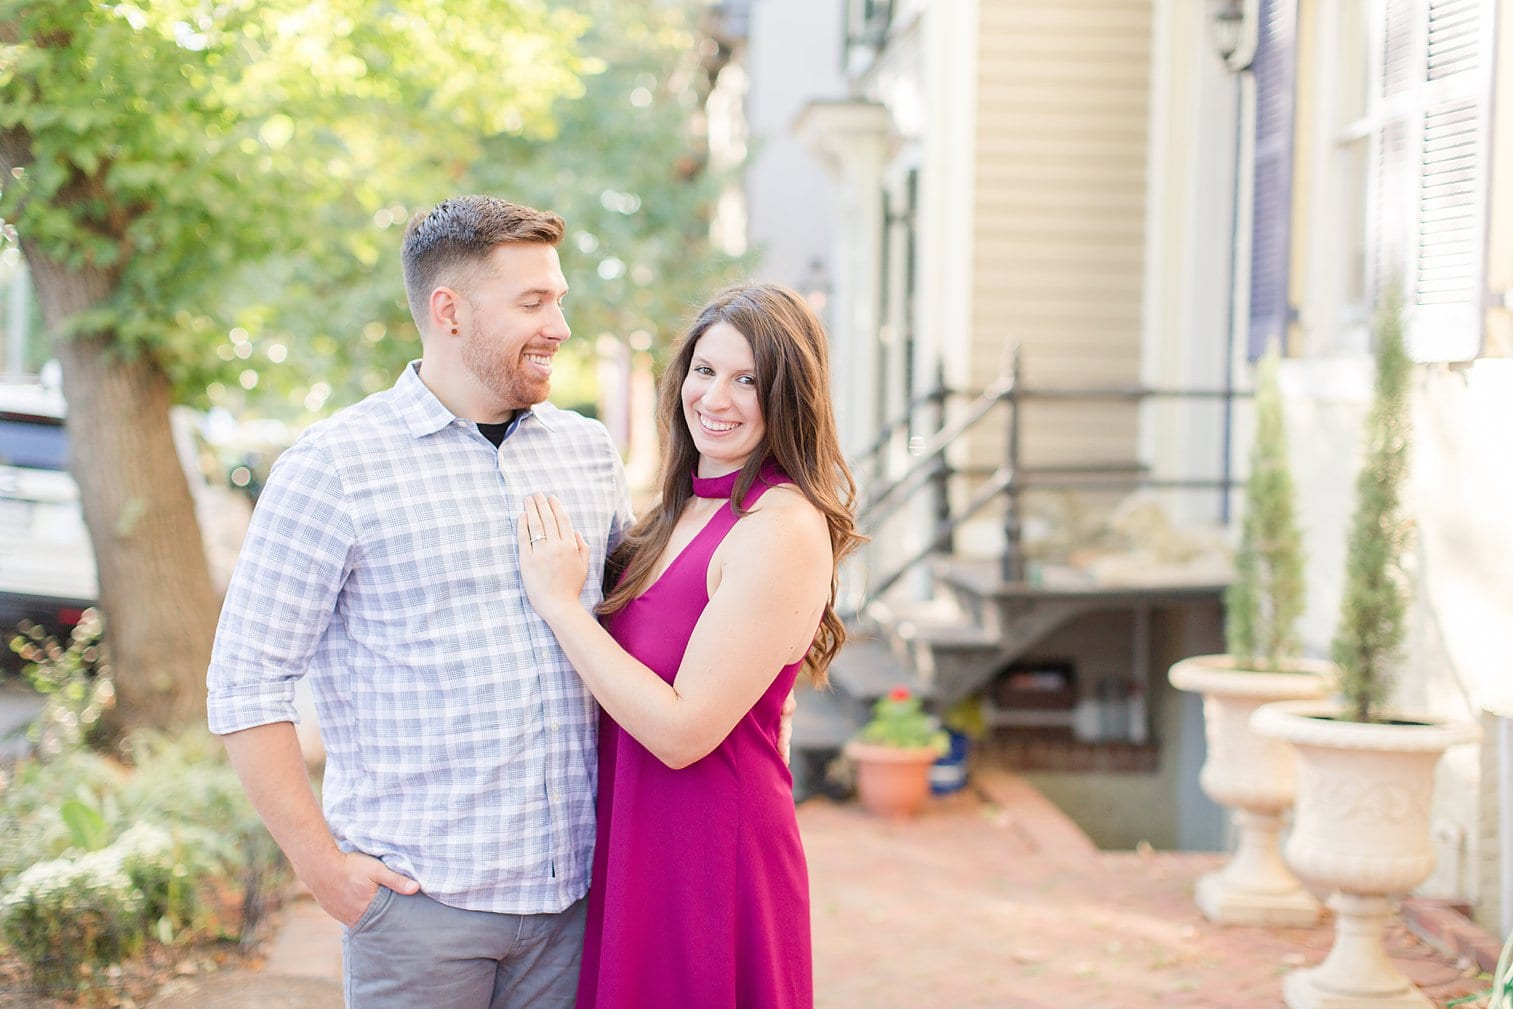 Fall Old Town Alexandria Engagement Photos Megan Kelsey Photography Virginia Wed-0014.jpg